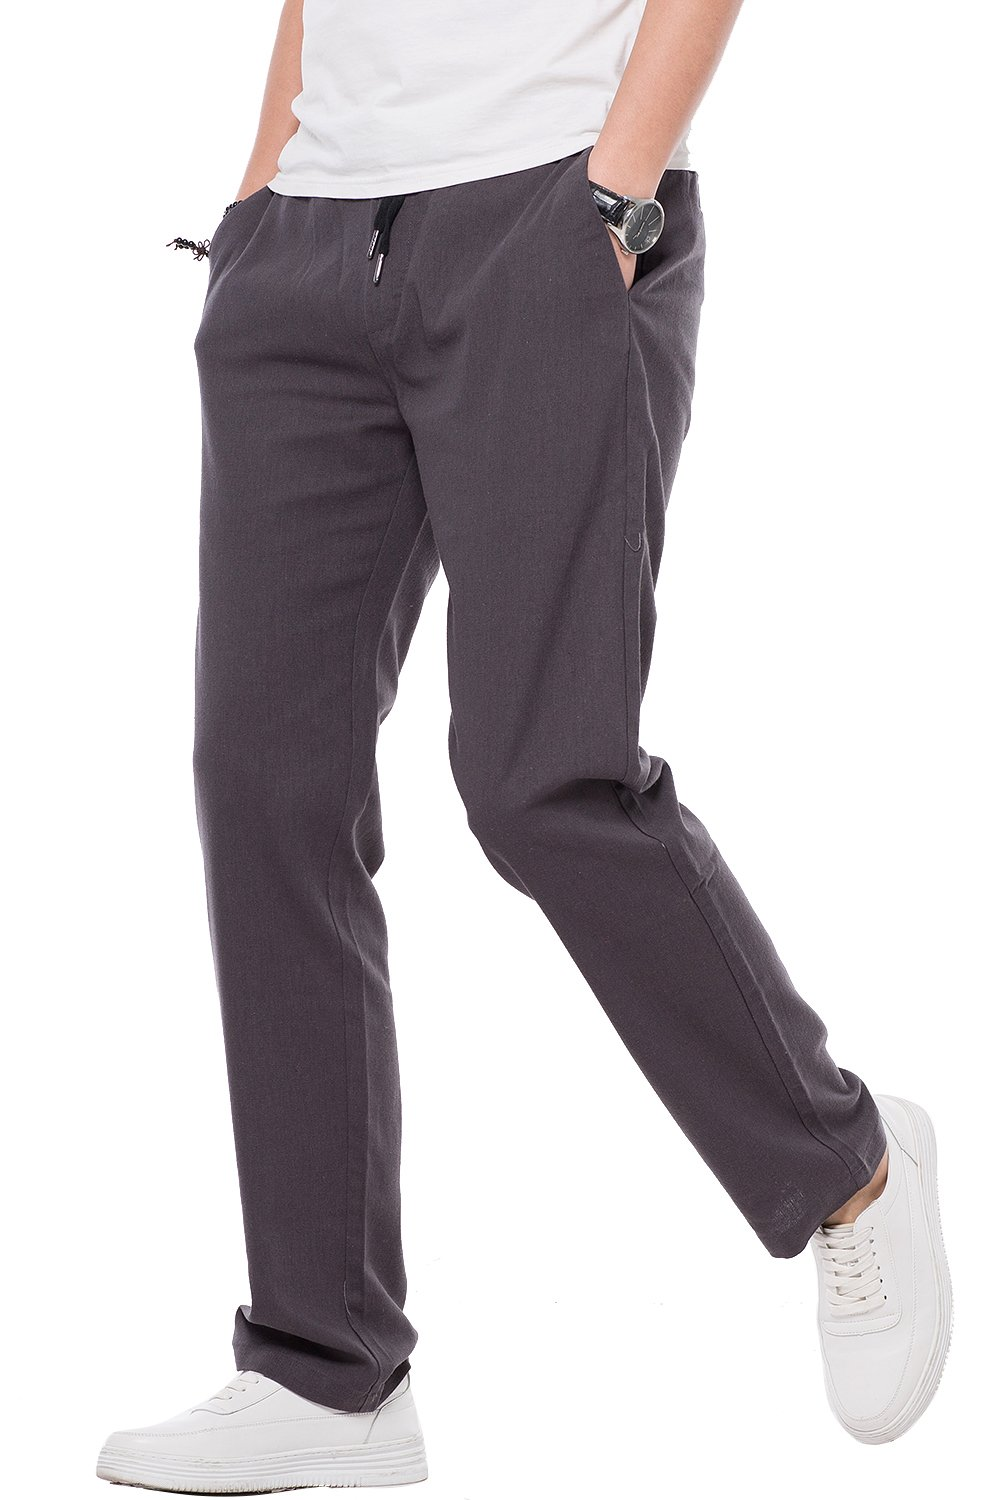 INFLATION Men's Relaxed-Fit Drawstring Cotton Linen Pant Lightweight Summer Trousers